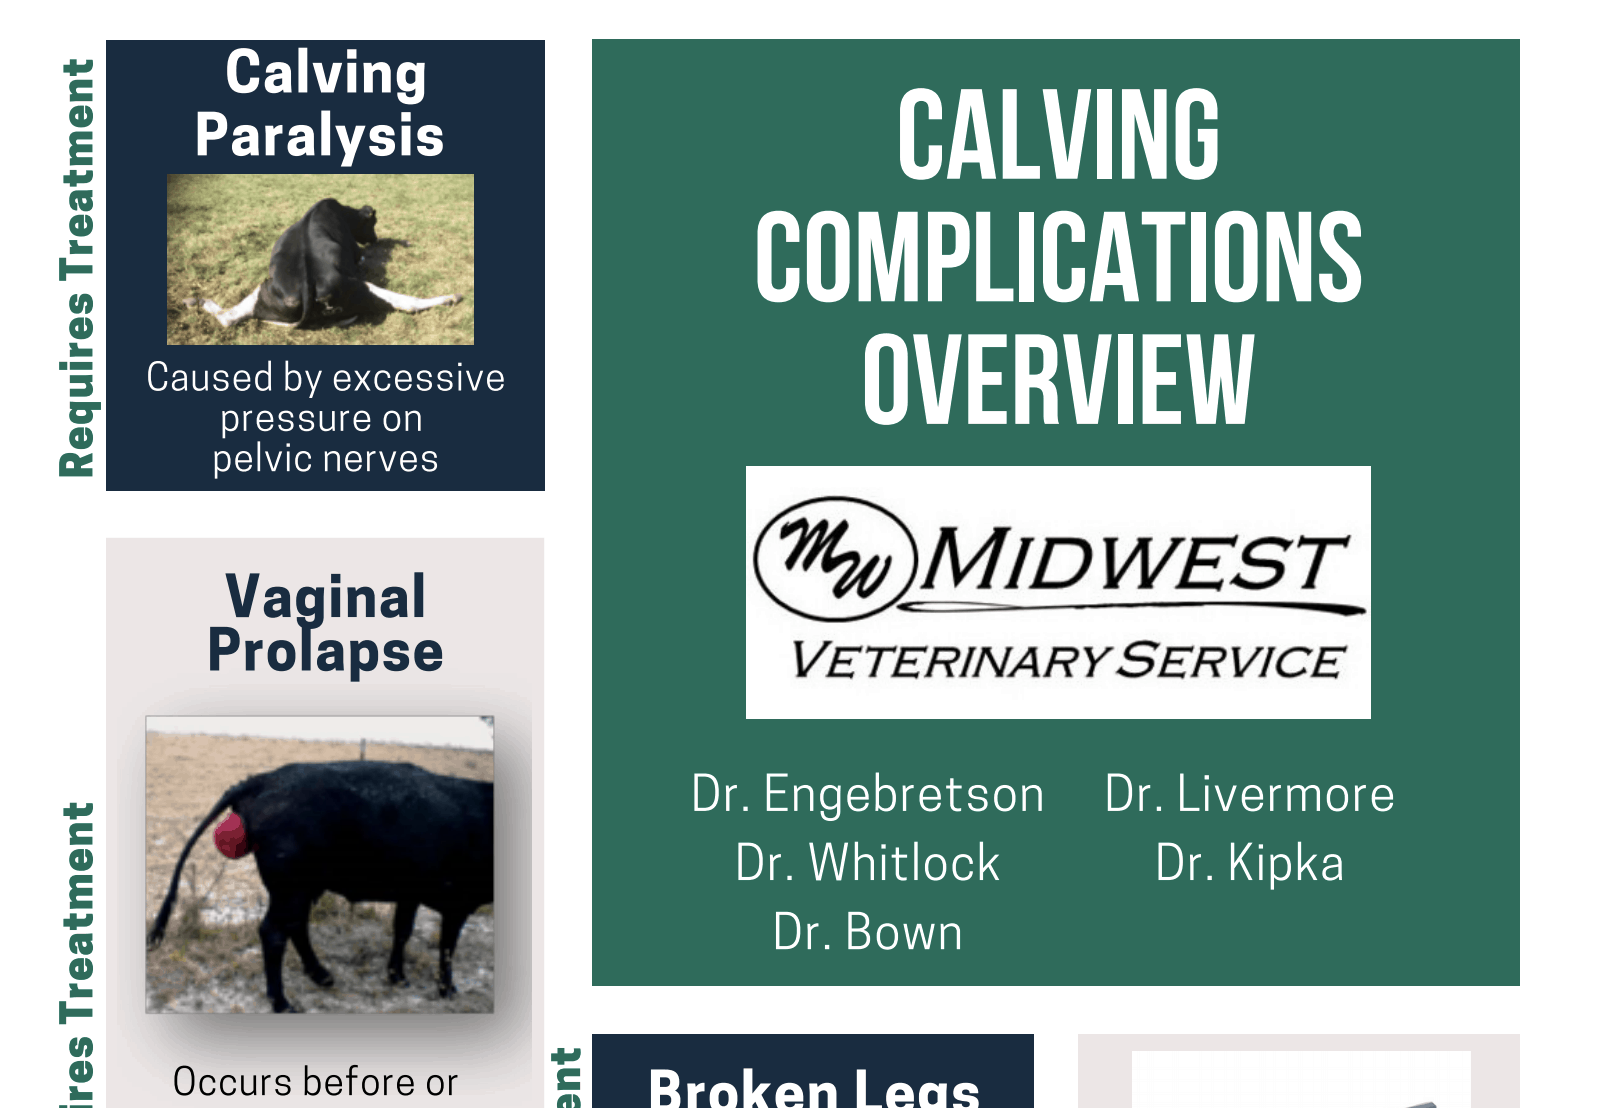 Midwest Veterinary Services   Your source for quality vet services, for both companion and production animals. Serving the Tri-State area of Iowa, Minnesota, South Dakota, and surrounding areas. We also offer a great selection of online veterinary supplies in our online store.